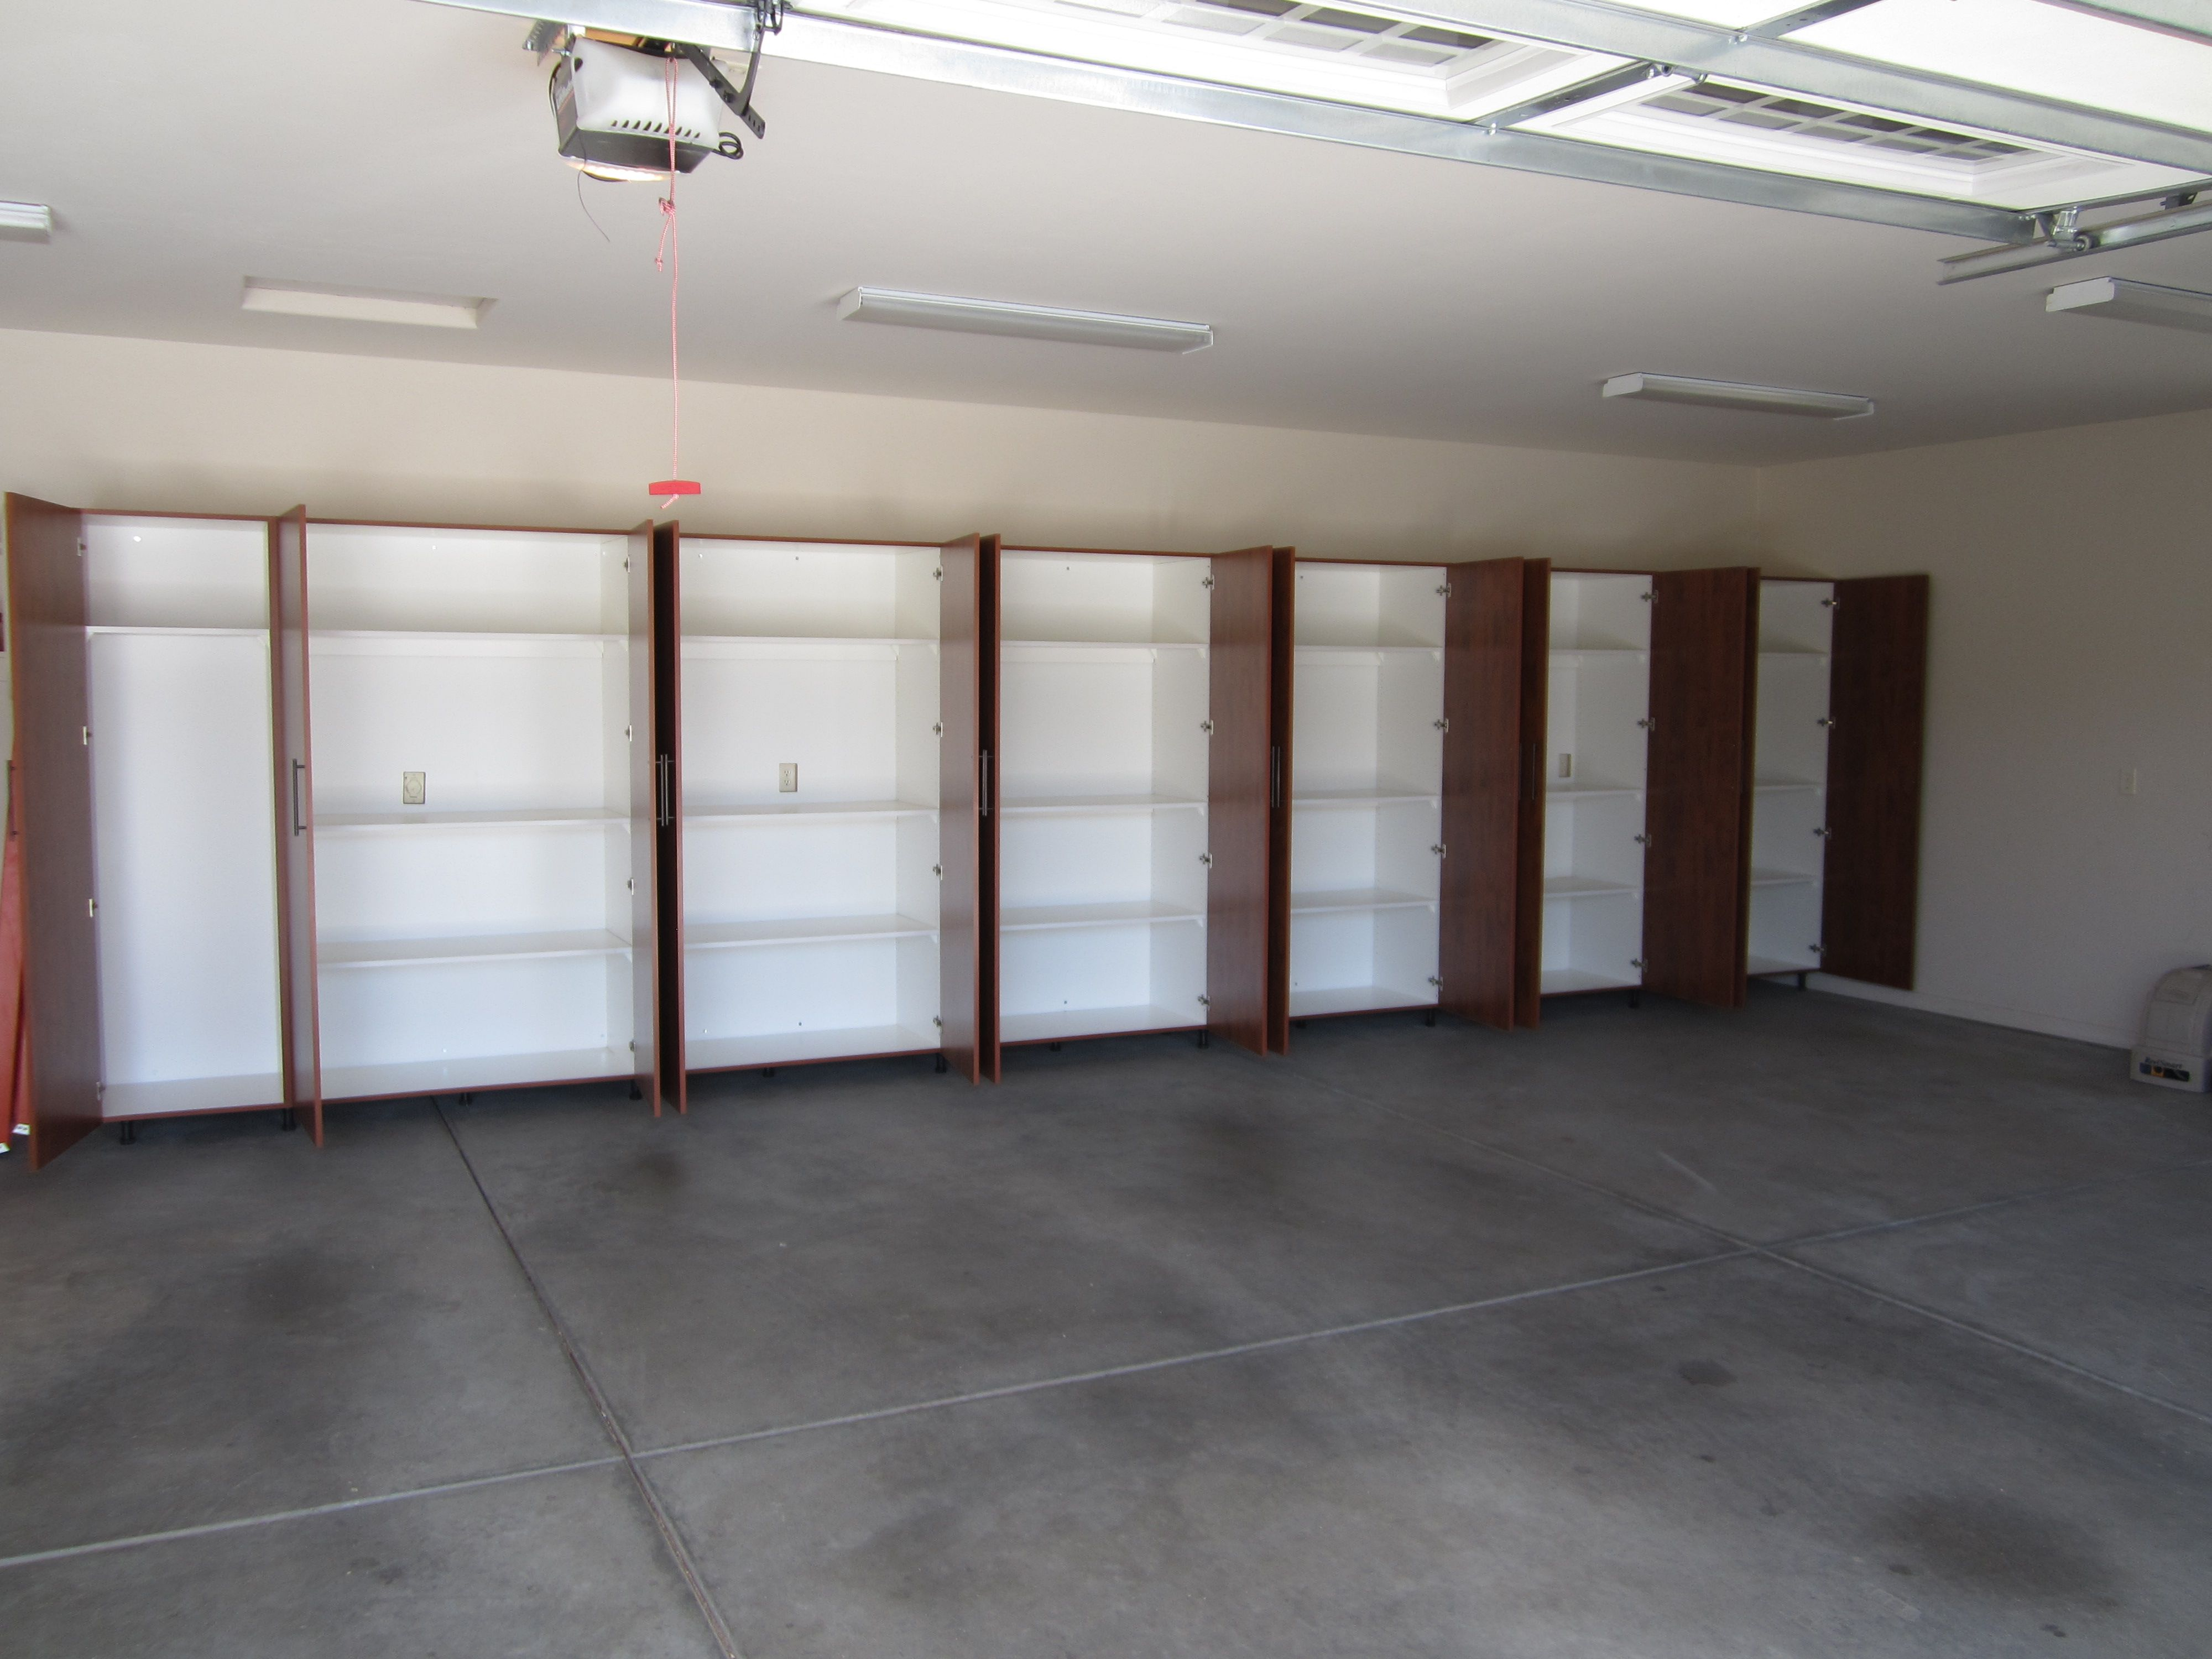 Interior view summerflame cabinets